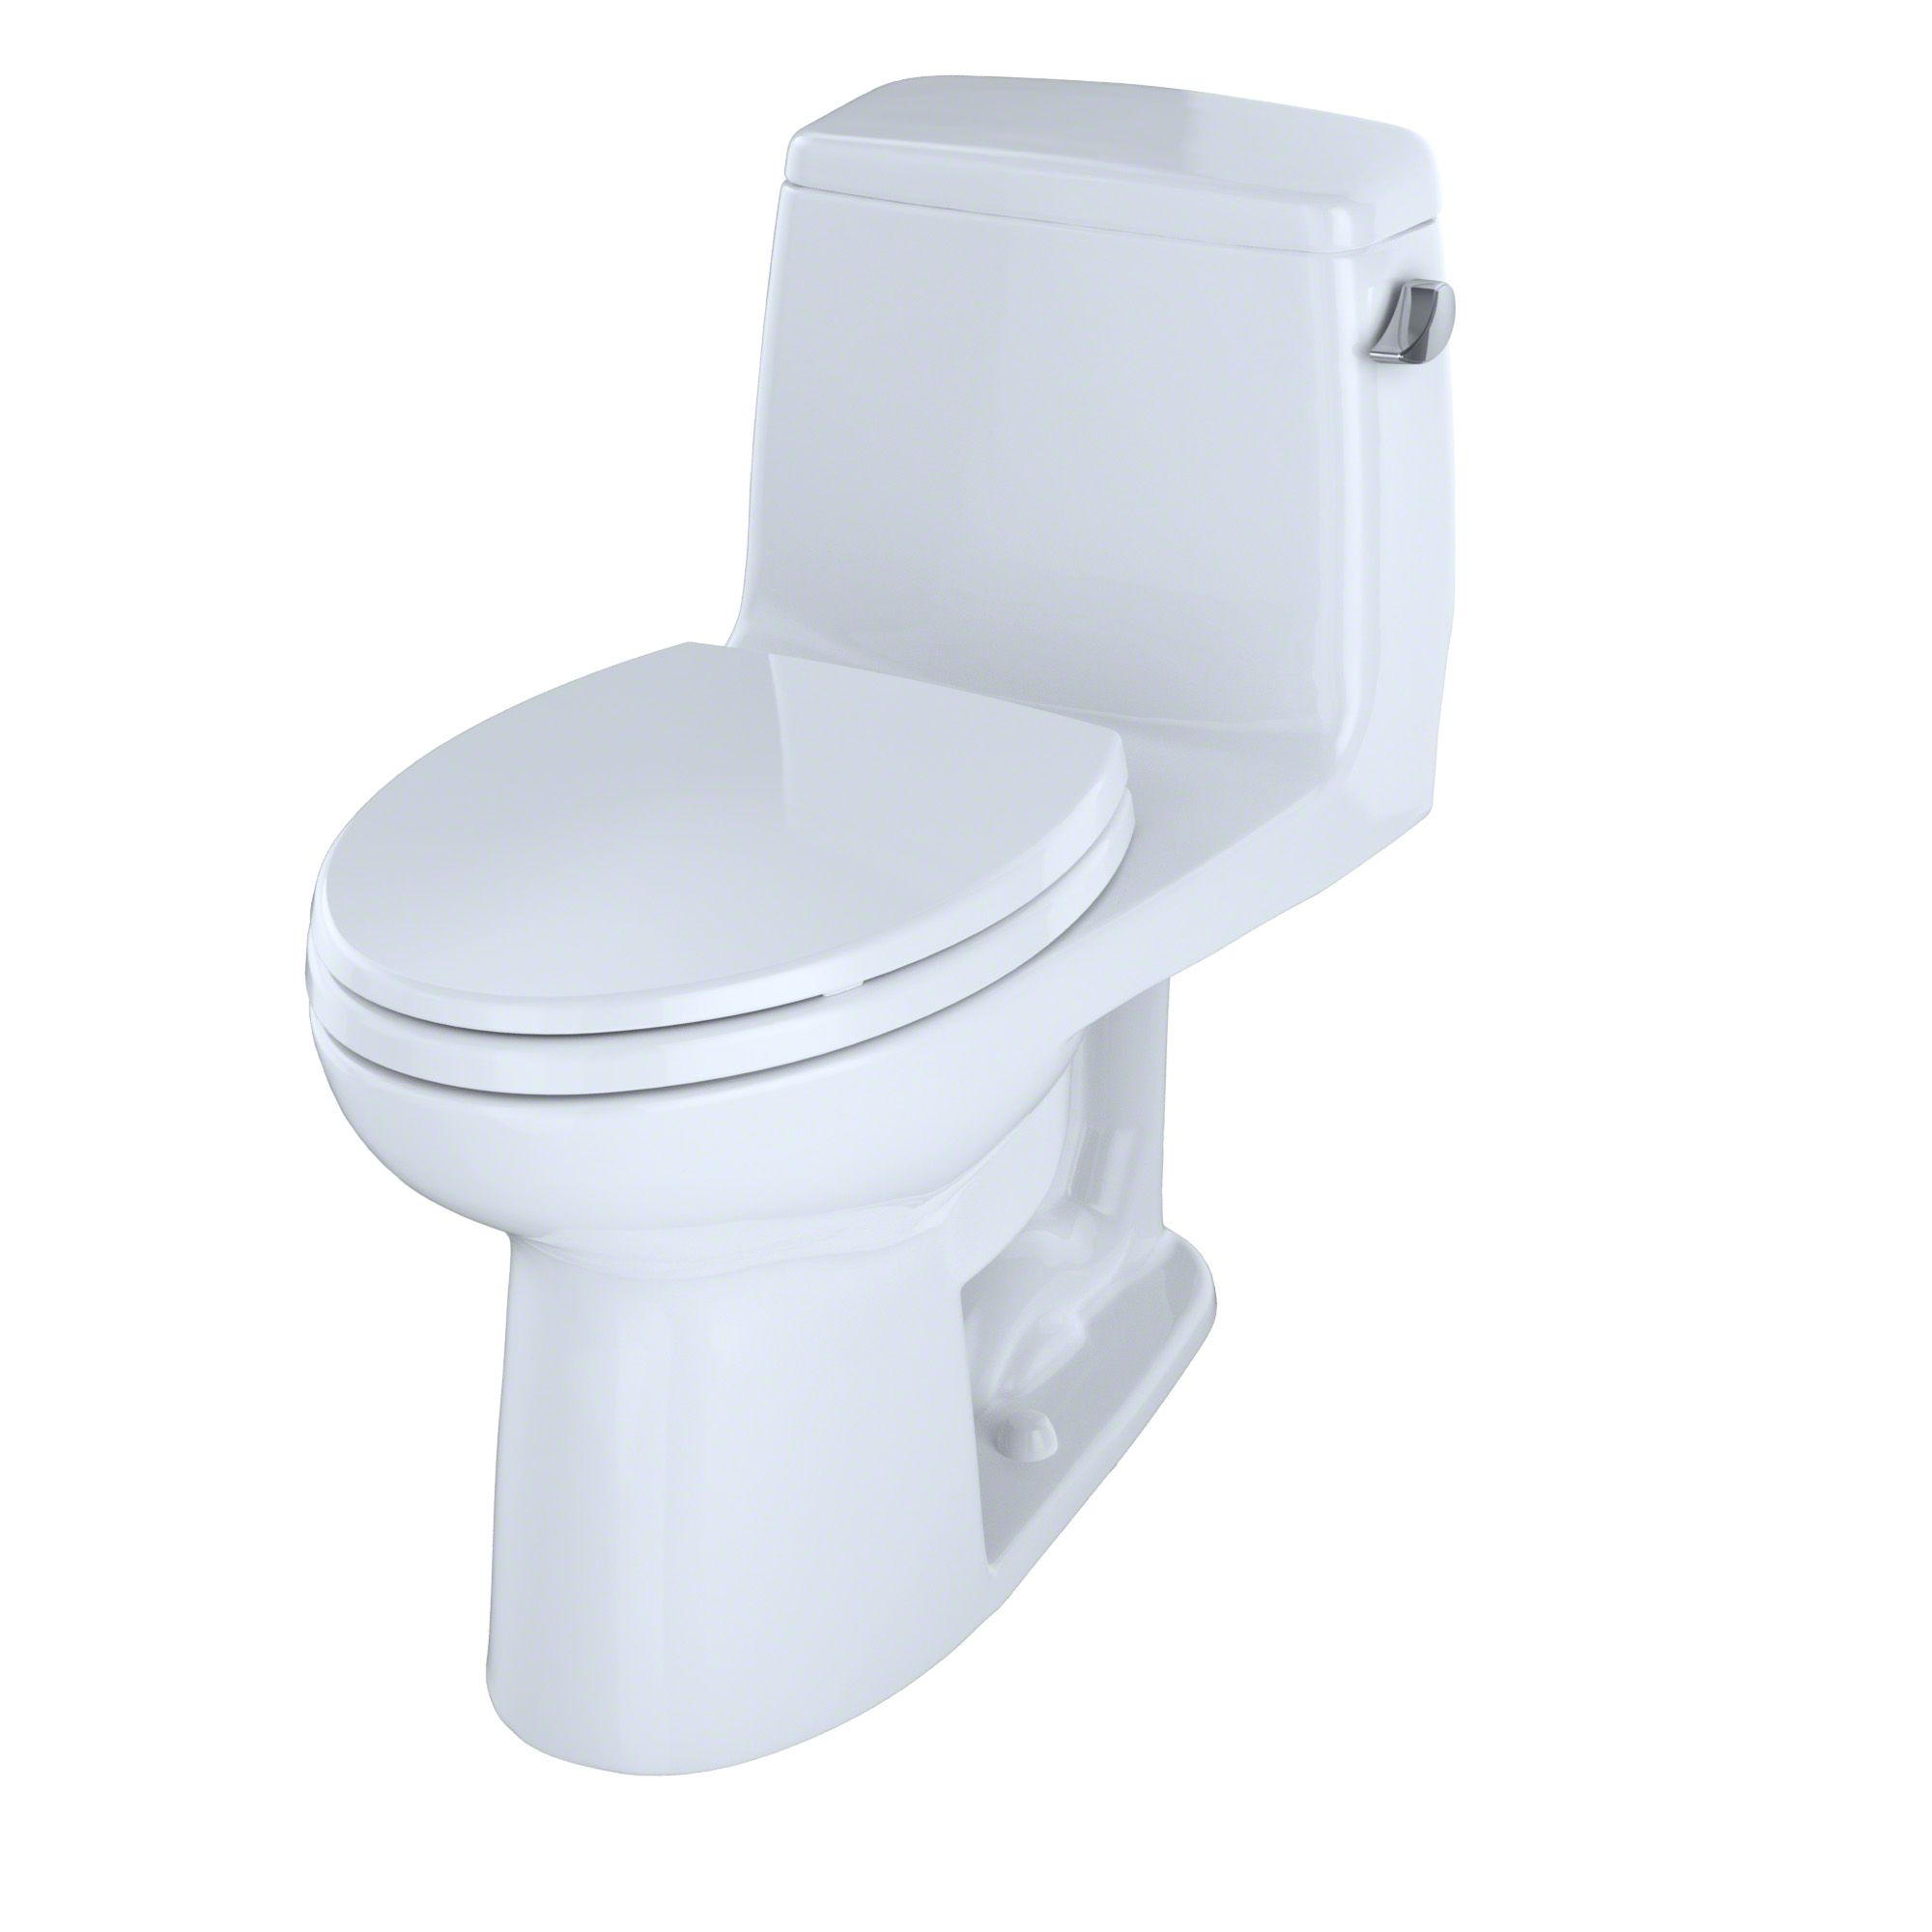 Toto Eco Ultramax One Piece Elongated 1 28 Gpf Ada Compliant Toilet With Right Hand Trip Lever Cotton White Ms854114elr 01 Toto Toilet Traditional Toilets Toilet